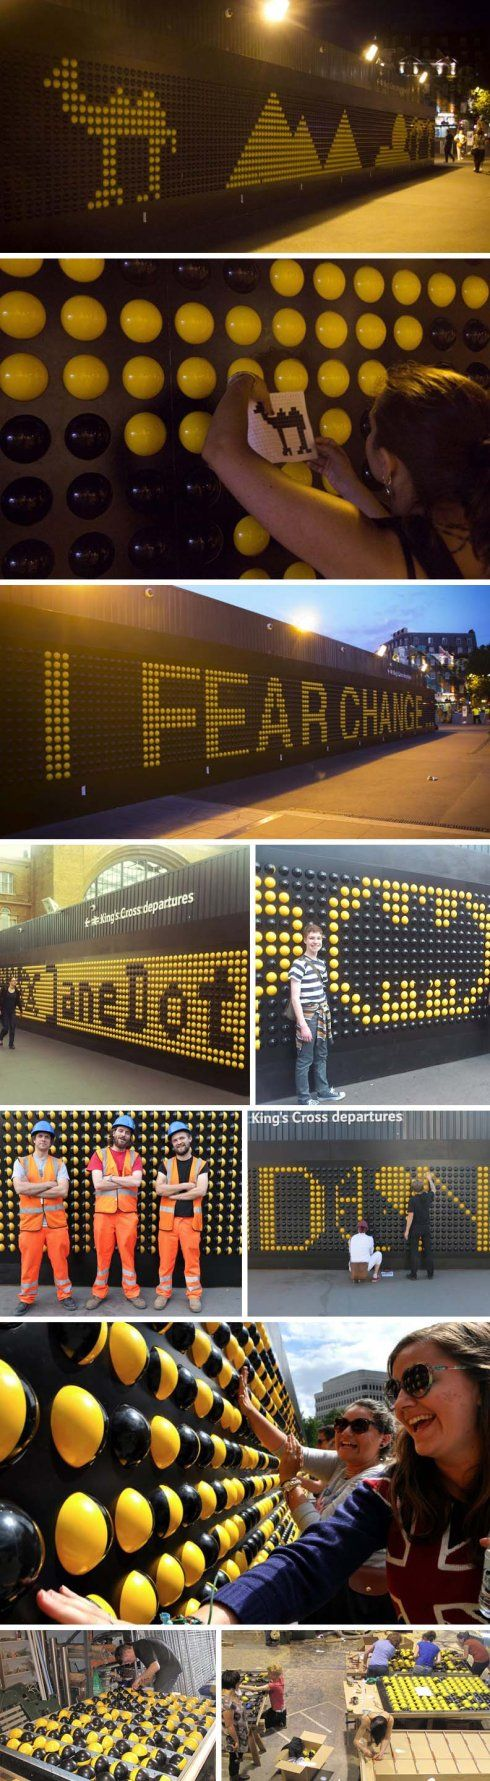 2940 yellow and black plastic spheres across a 35m-long wall made up the fun and engaging interactive pop-up installation at London's King's Cross station called Song Board. Designed by the students at Central Saint Martins University of the Arts in London